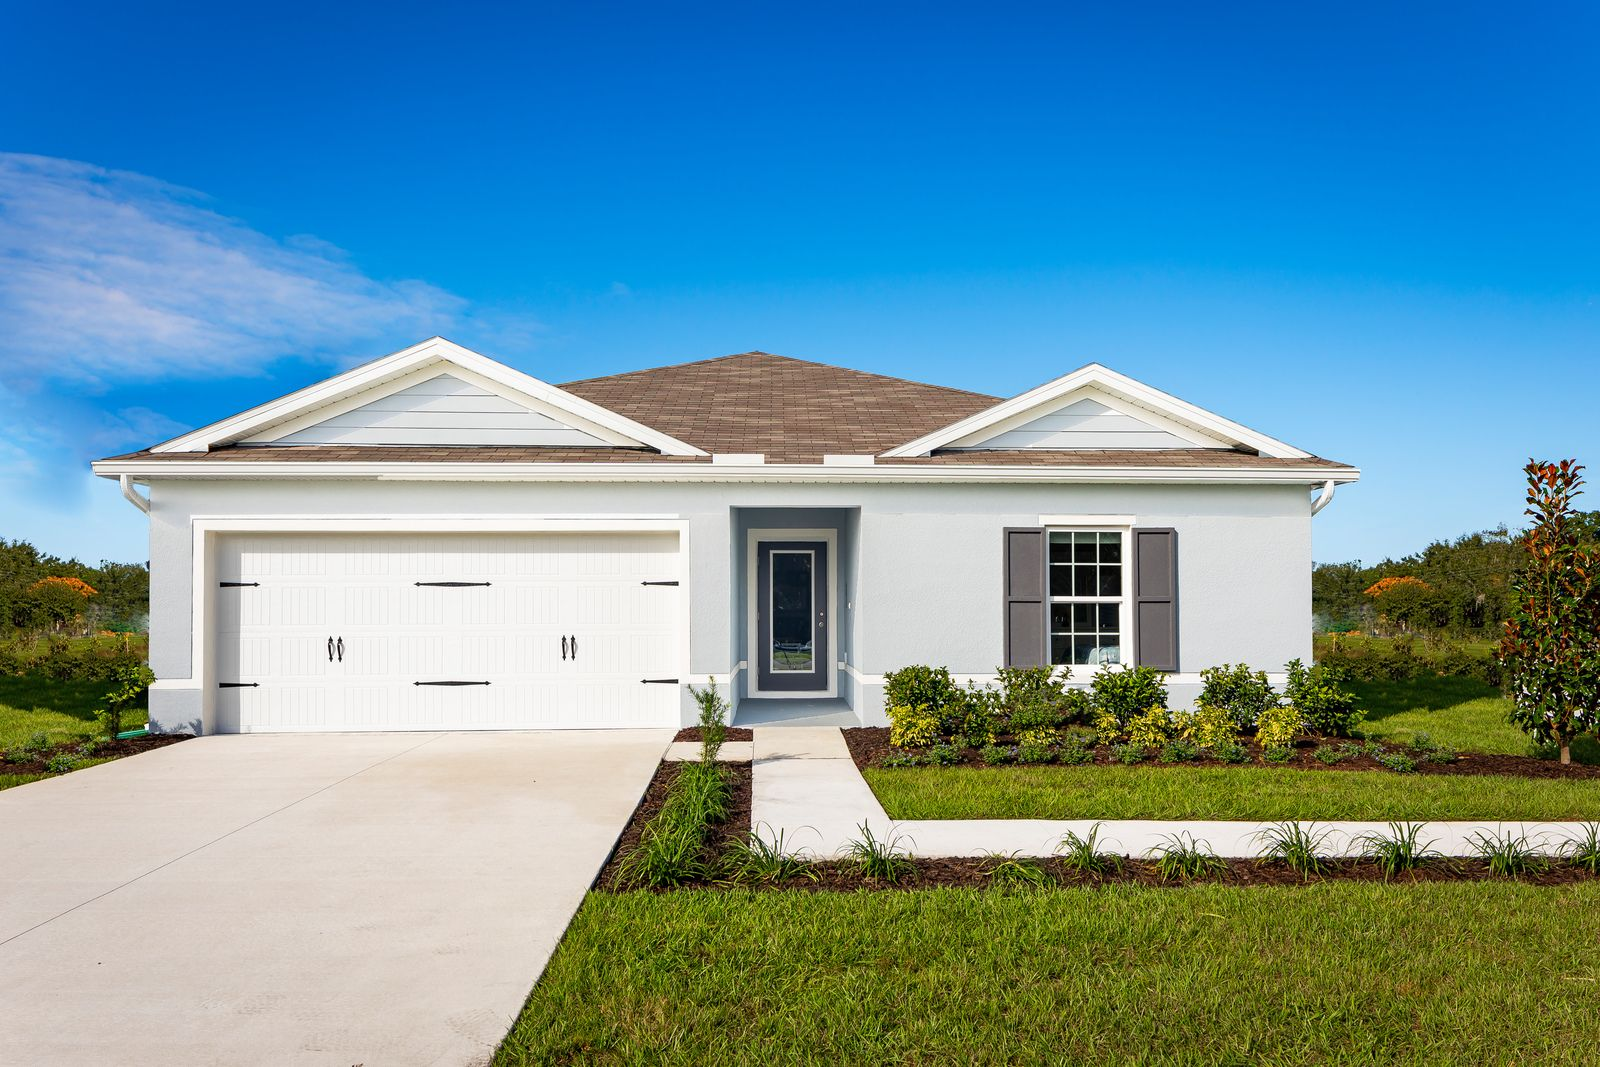 New Homesites - Now Available at Eagle Landing in Winter Haven, FL:NEW HOMESITES - NOW AVAILABLE!NO CDD & Low HOA. From the low $200s.Se habla Español. Schedule a visittoday!